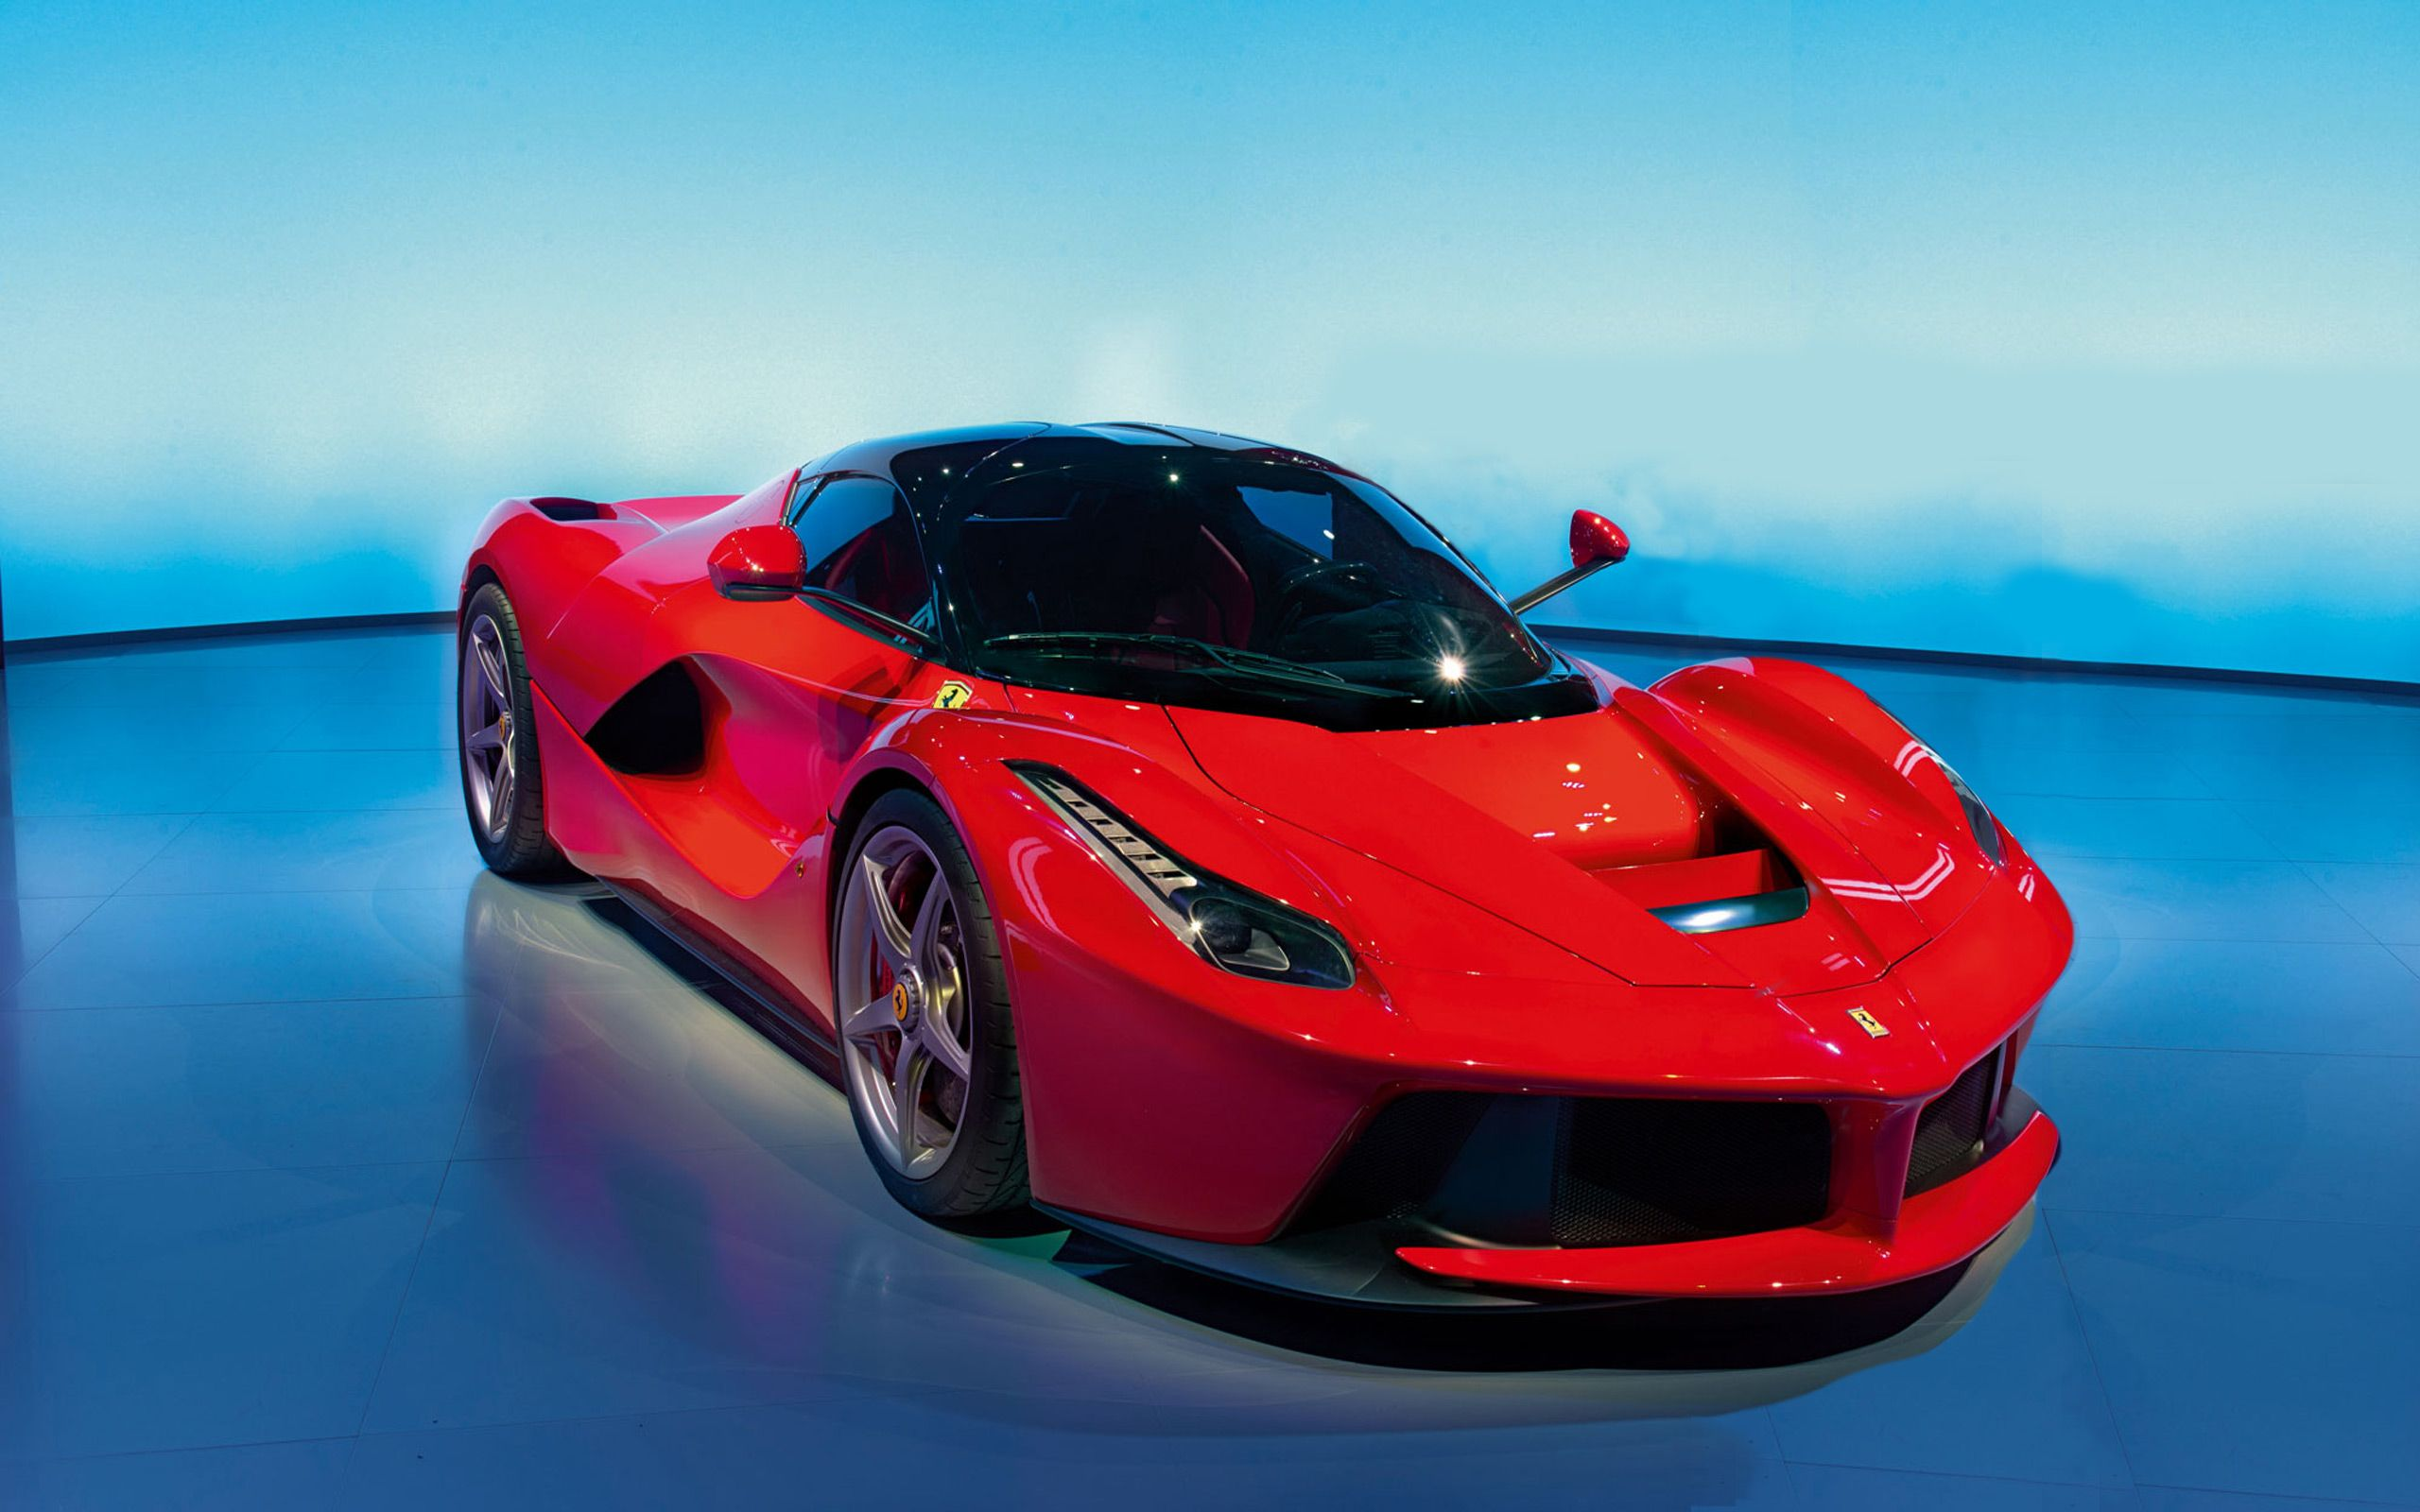 Superbe F1 Ferrari Crystal City Car 2014 Red Neon. Exceptionnel Ferrari  LaFerrari Http://supercarlegend.com/ | Ferrari | Pinterest |